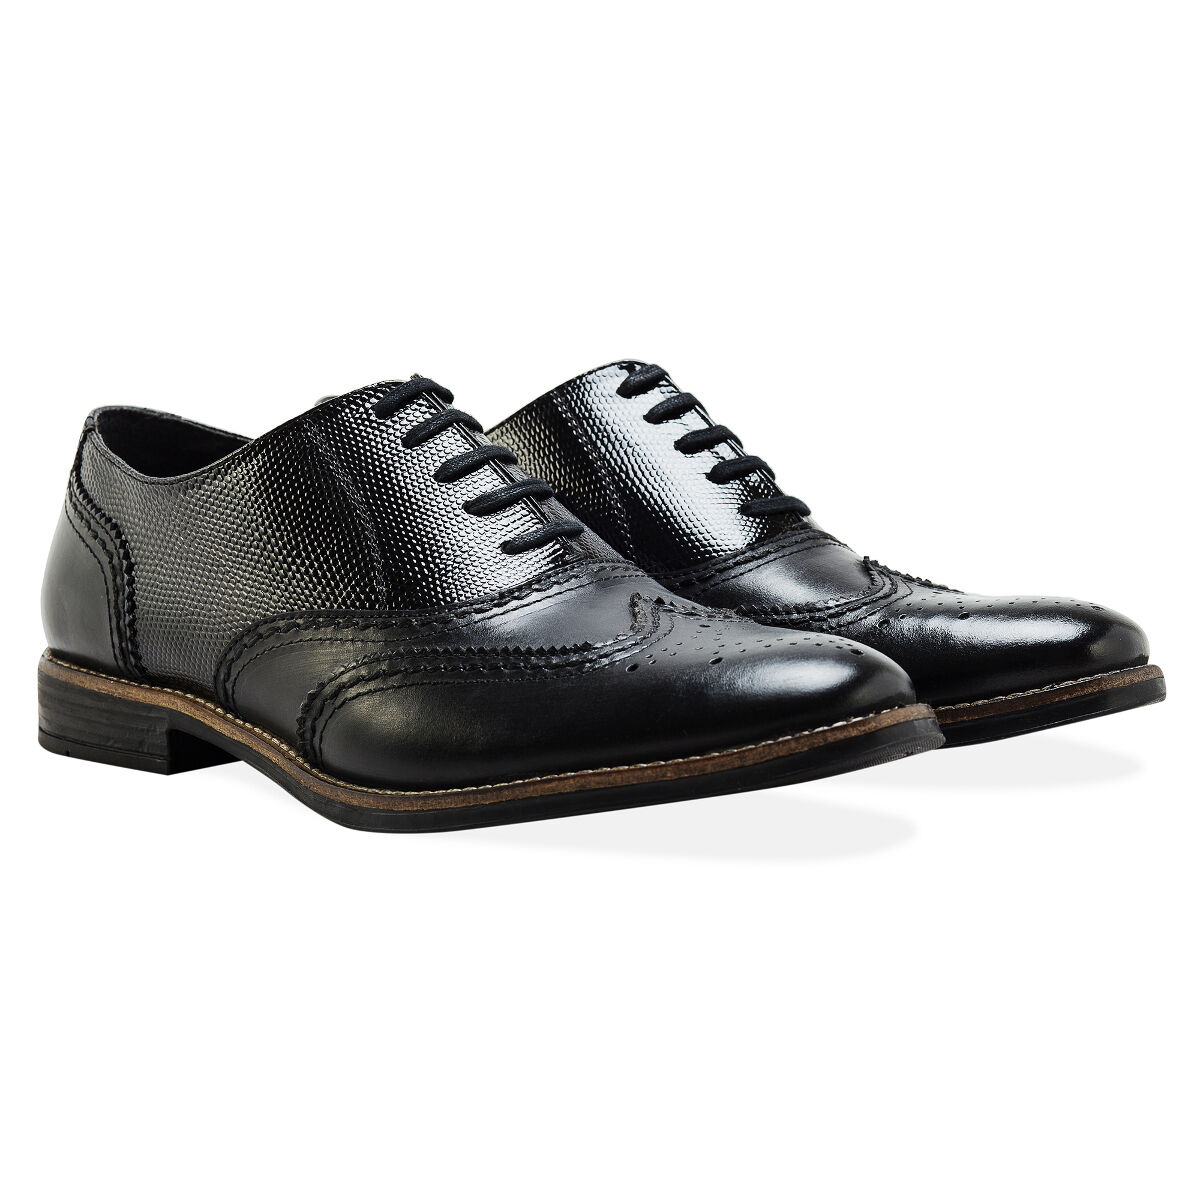 Redfoot Embossed Oxford Brogue Black Lace Up Mens shoes UK 11 Euro 45